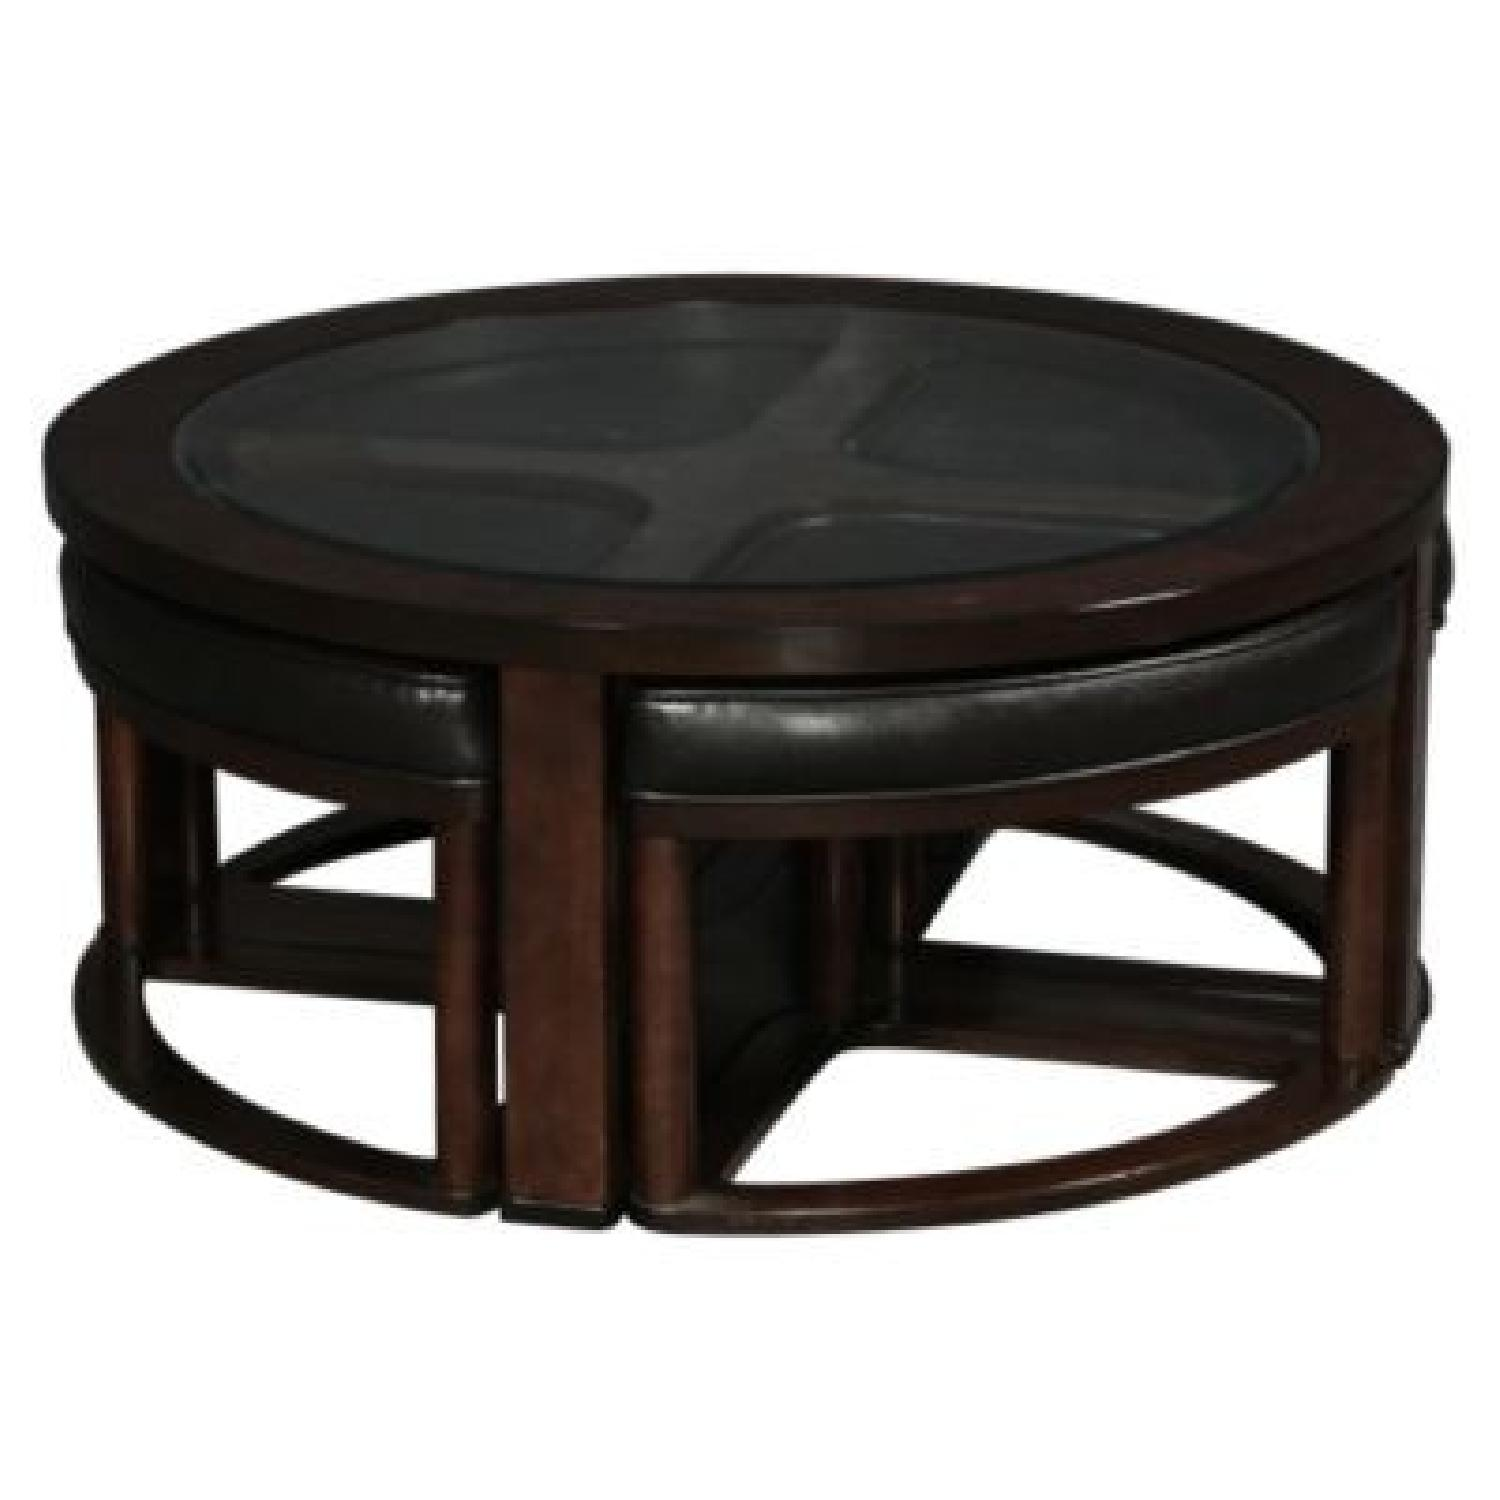 Ashley Wood & Glass Coffee Table w/ 4 Nesting Stools - image-1